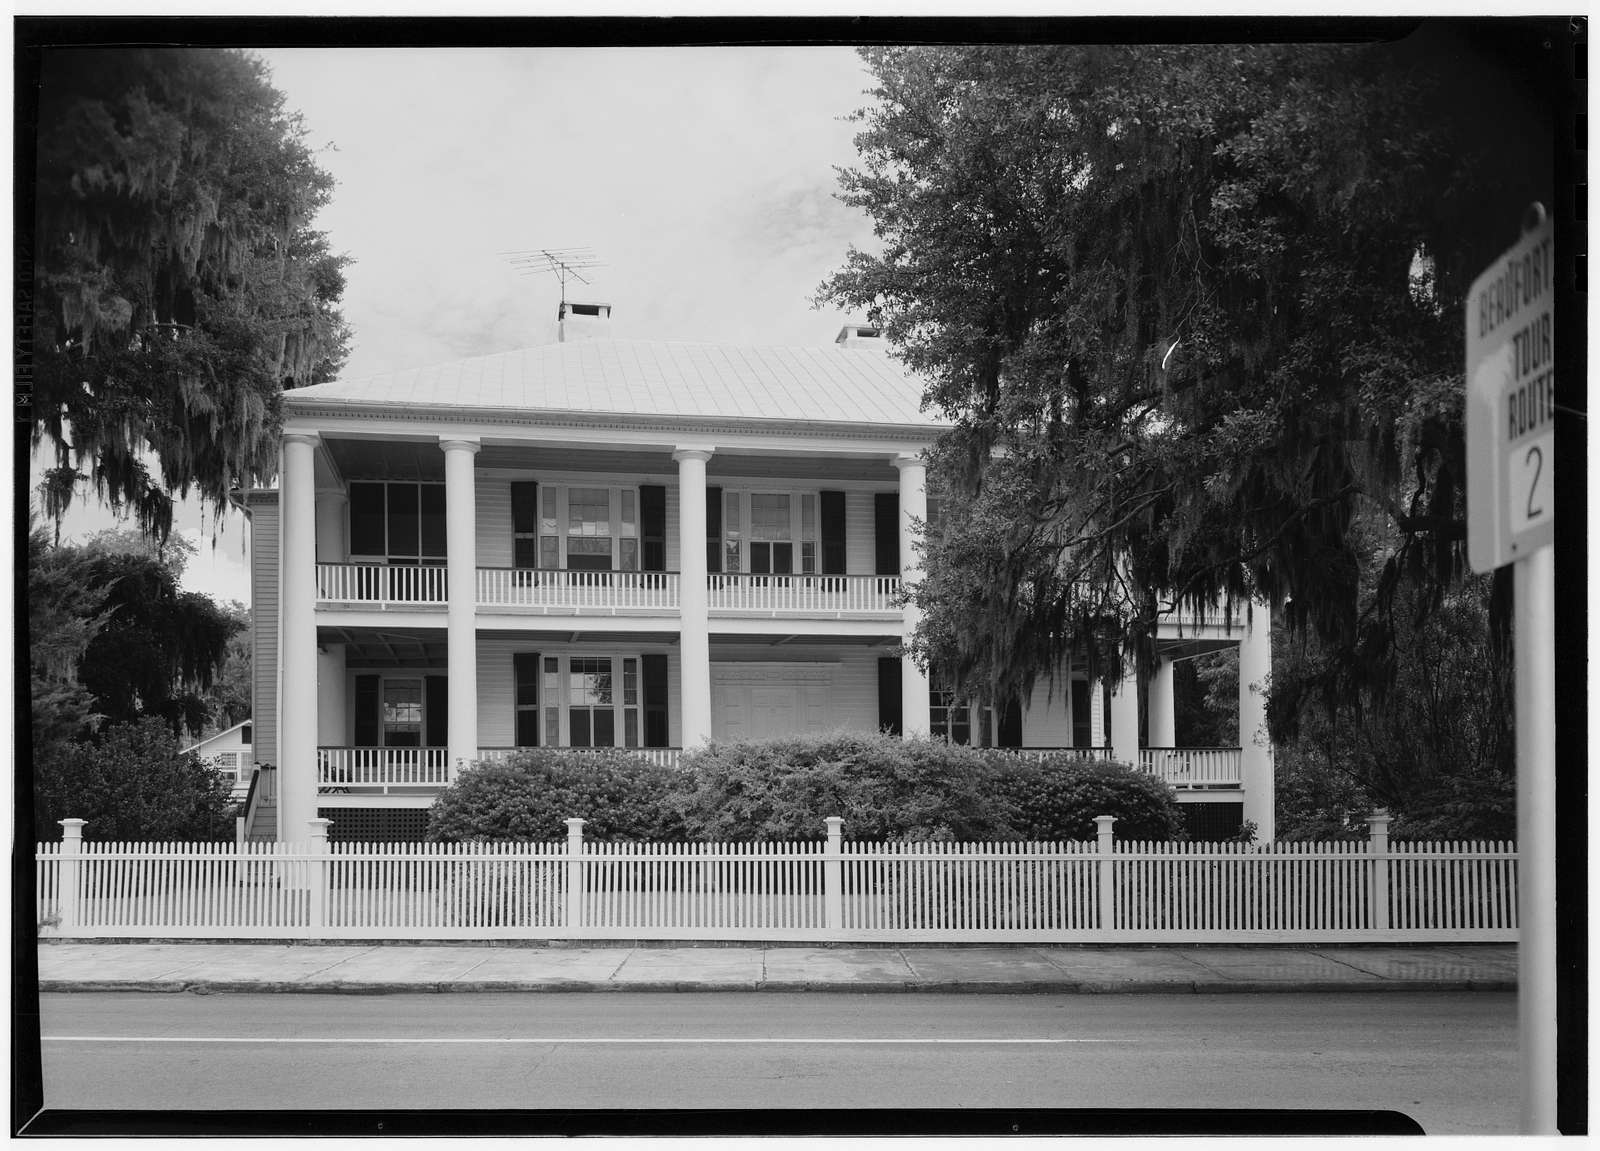 John Joyner Smith House, 400 Wilmington Street, Beaufort, Beaufort County, SC